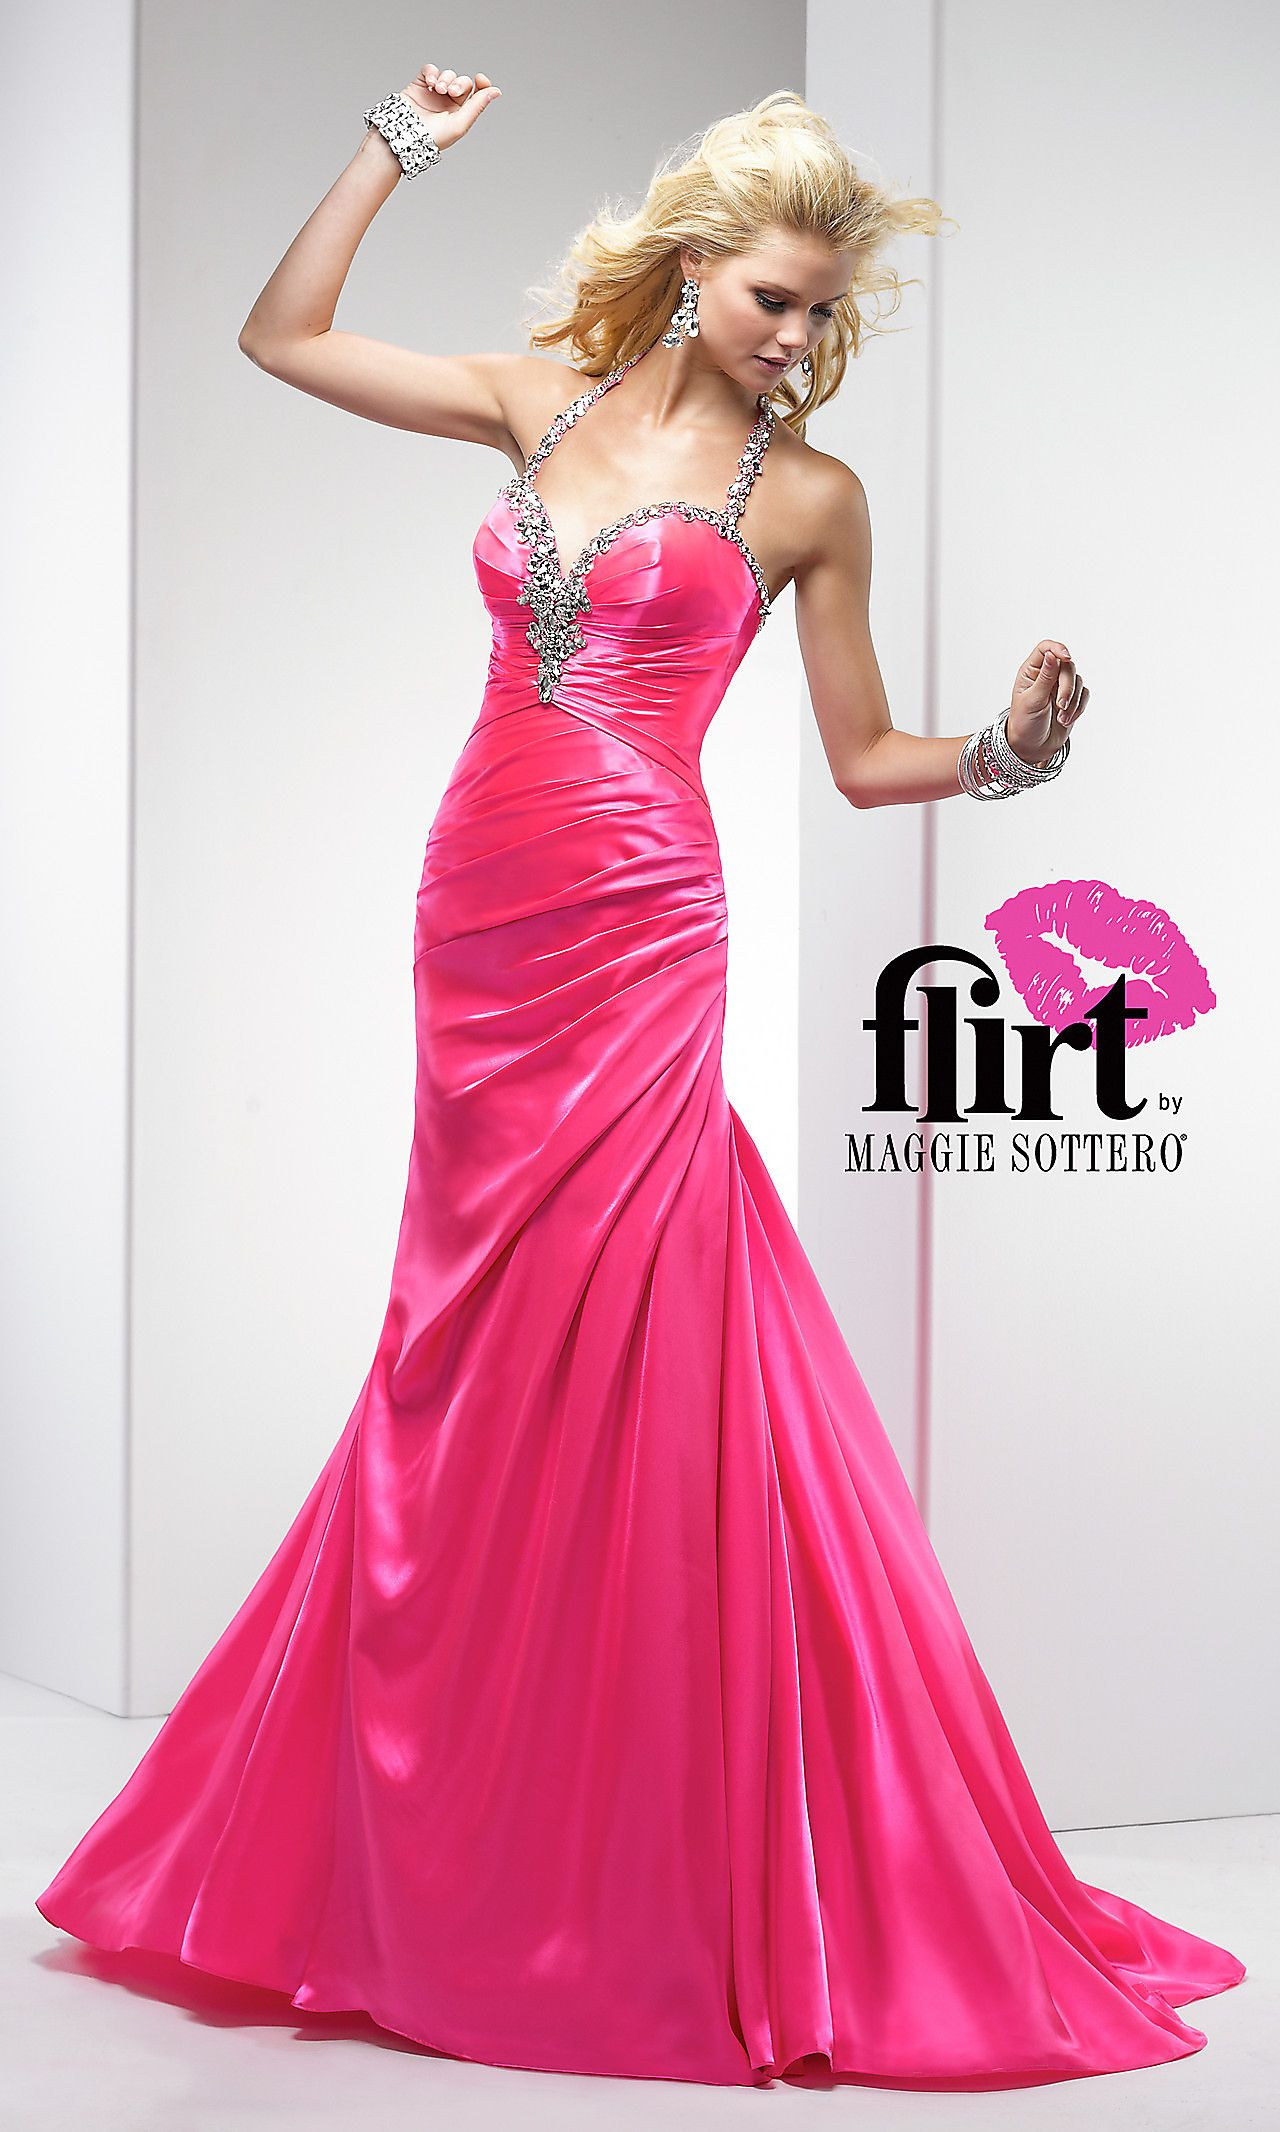 Floor Length Halter Top Prom Dress FL-P4684 | fashion | Pinterest